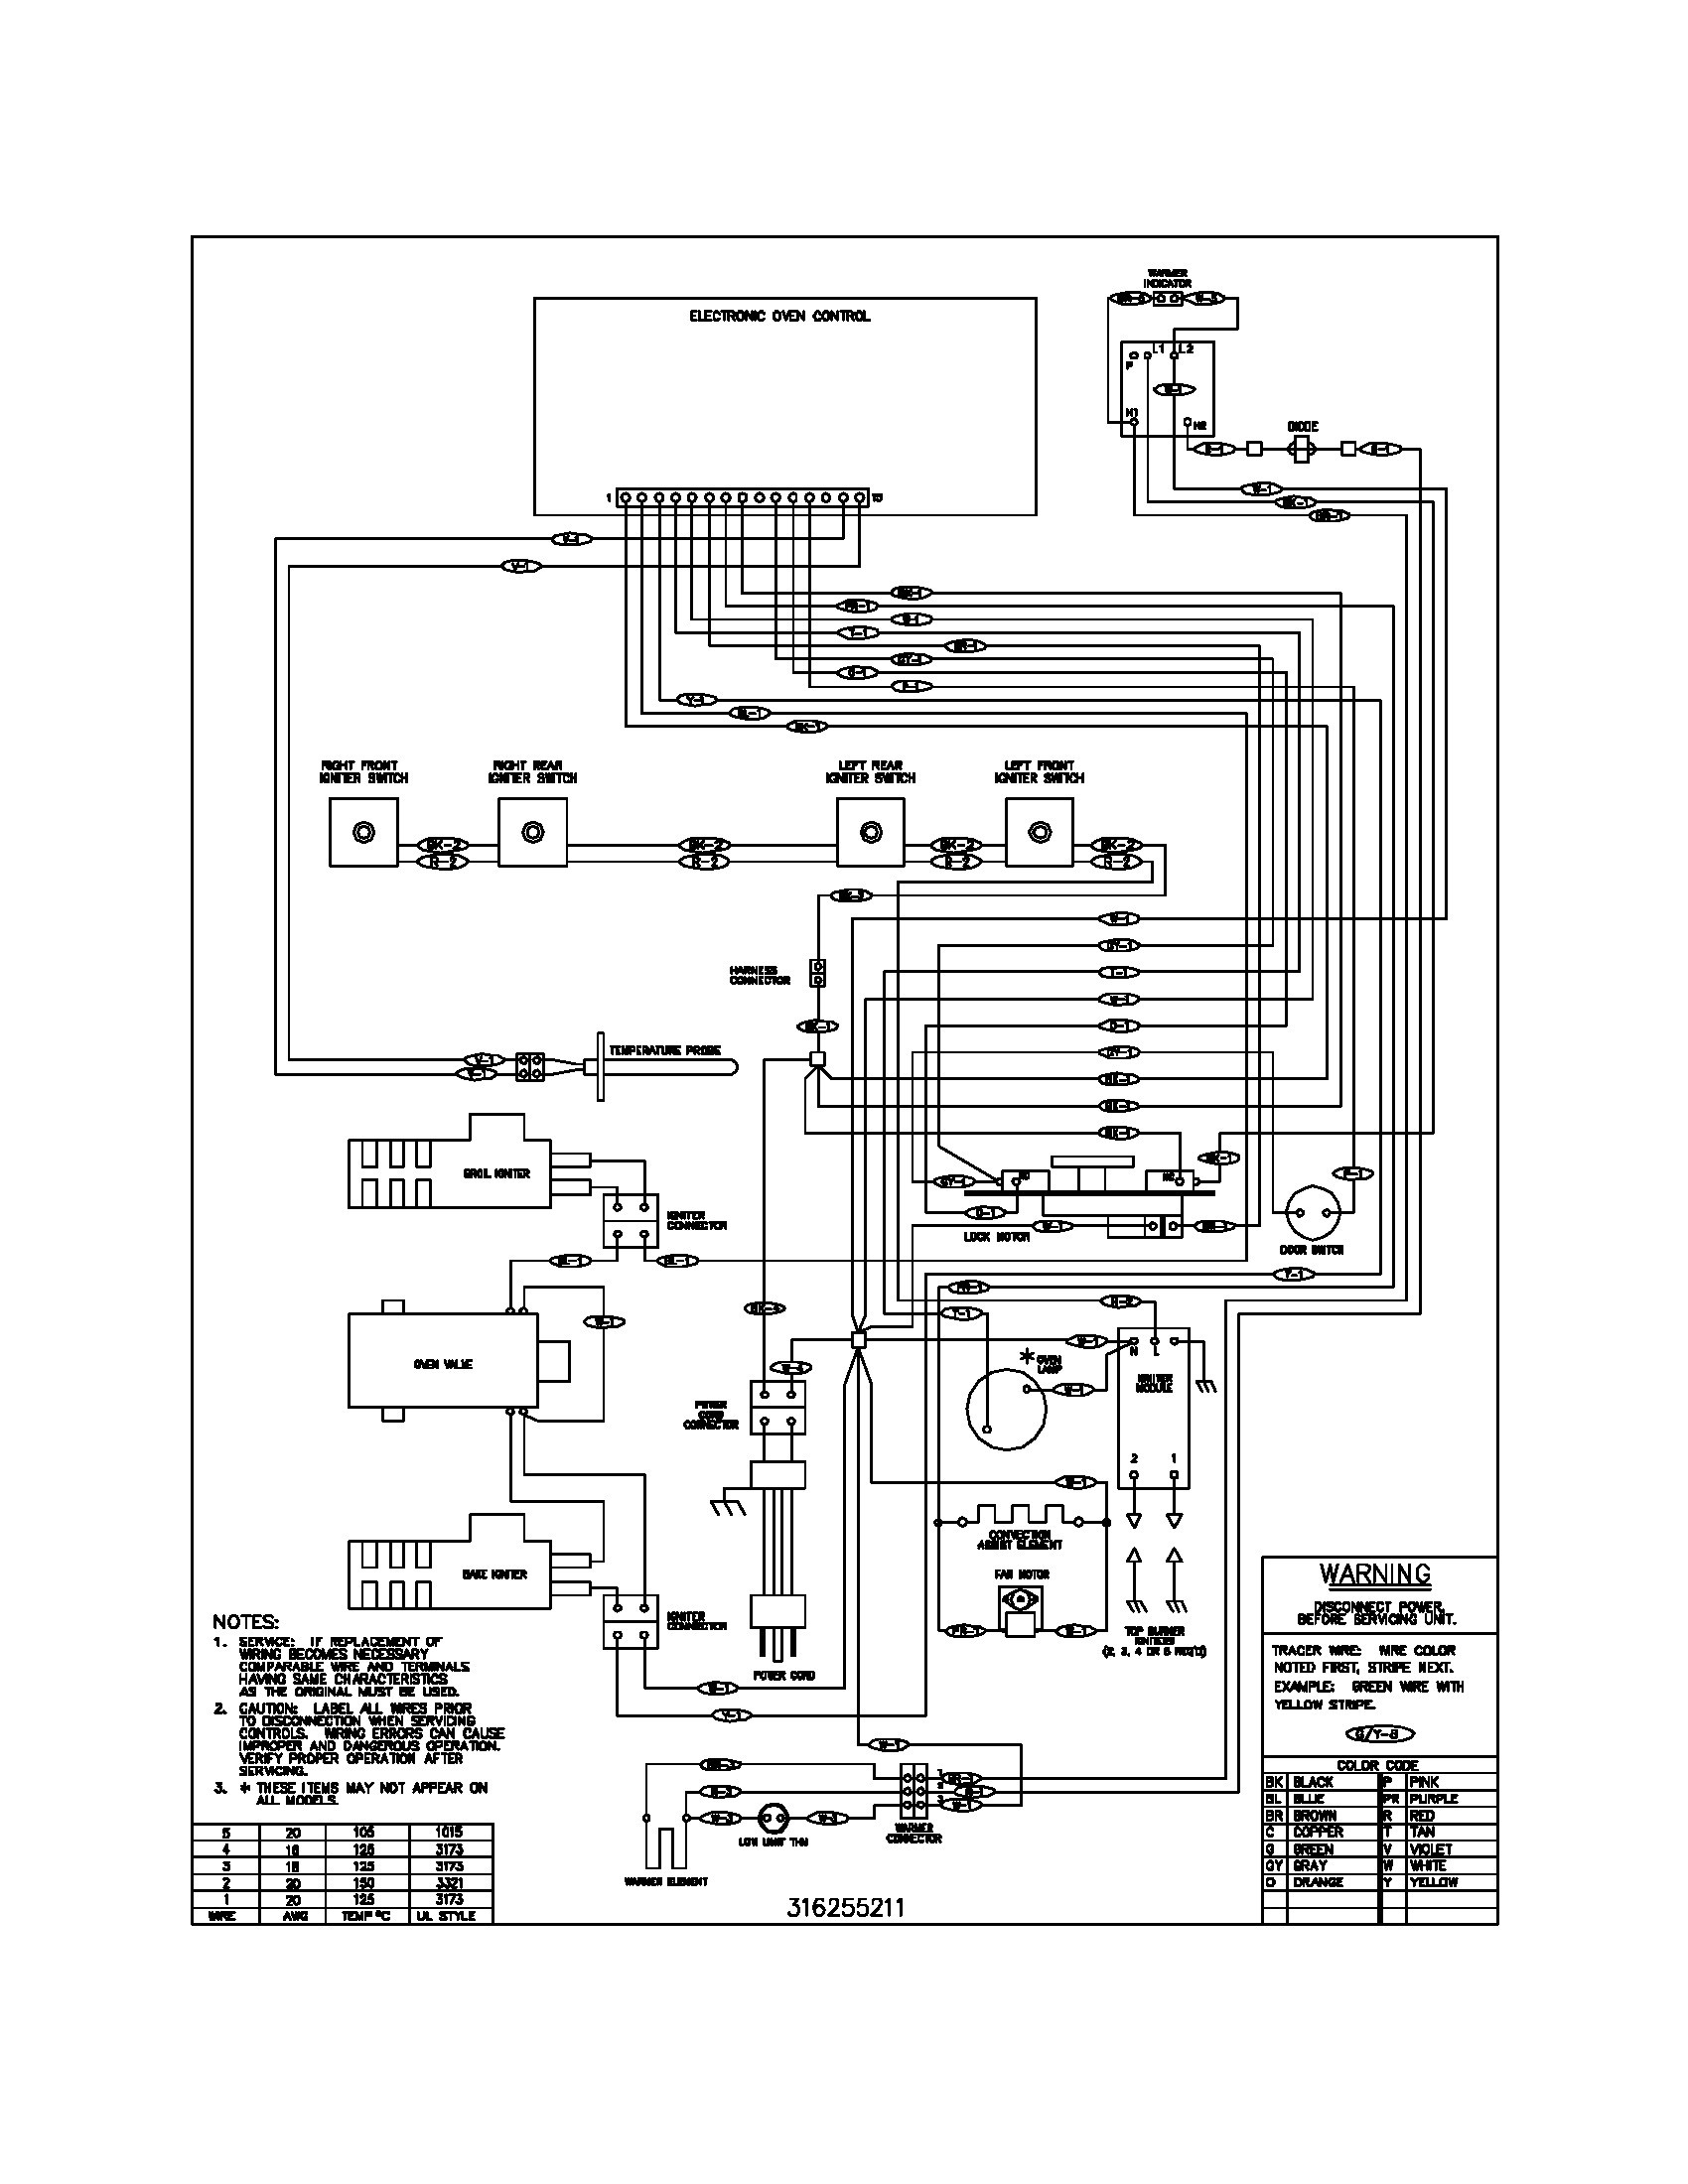 Ge Electric Furnace Wiring Diagram Fresh Ge Refrigerator Wiring Diagram Awesome Awesome Freezer Defrost Timer